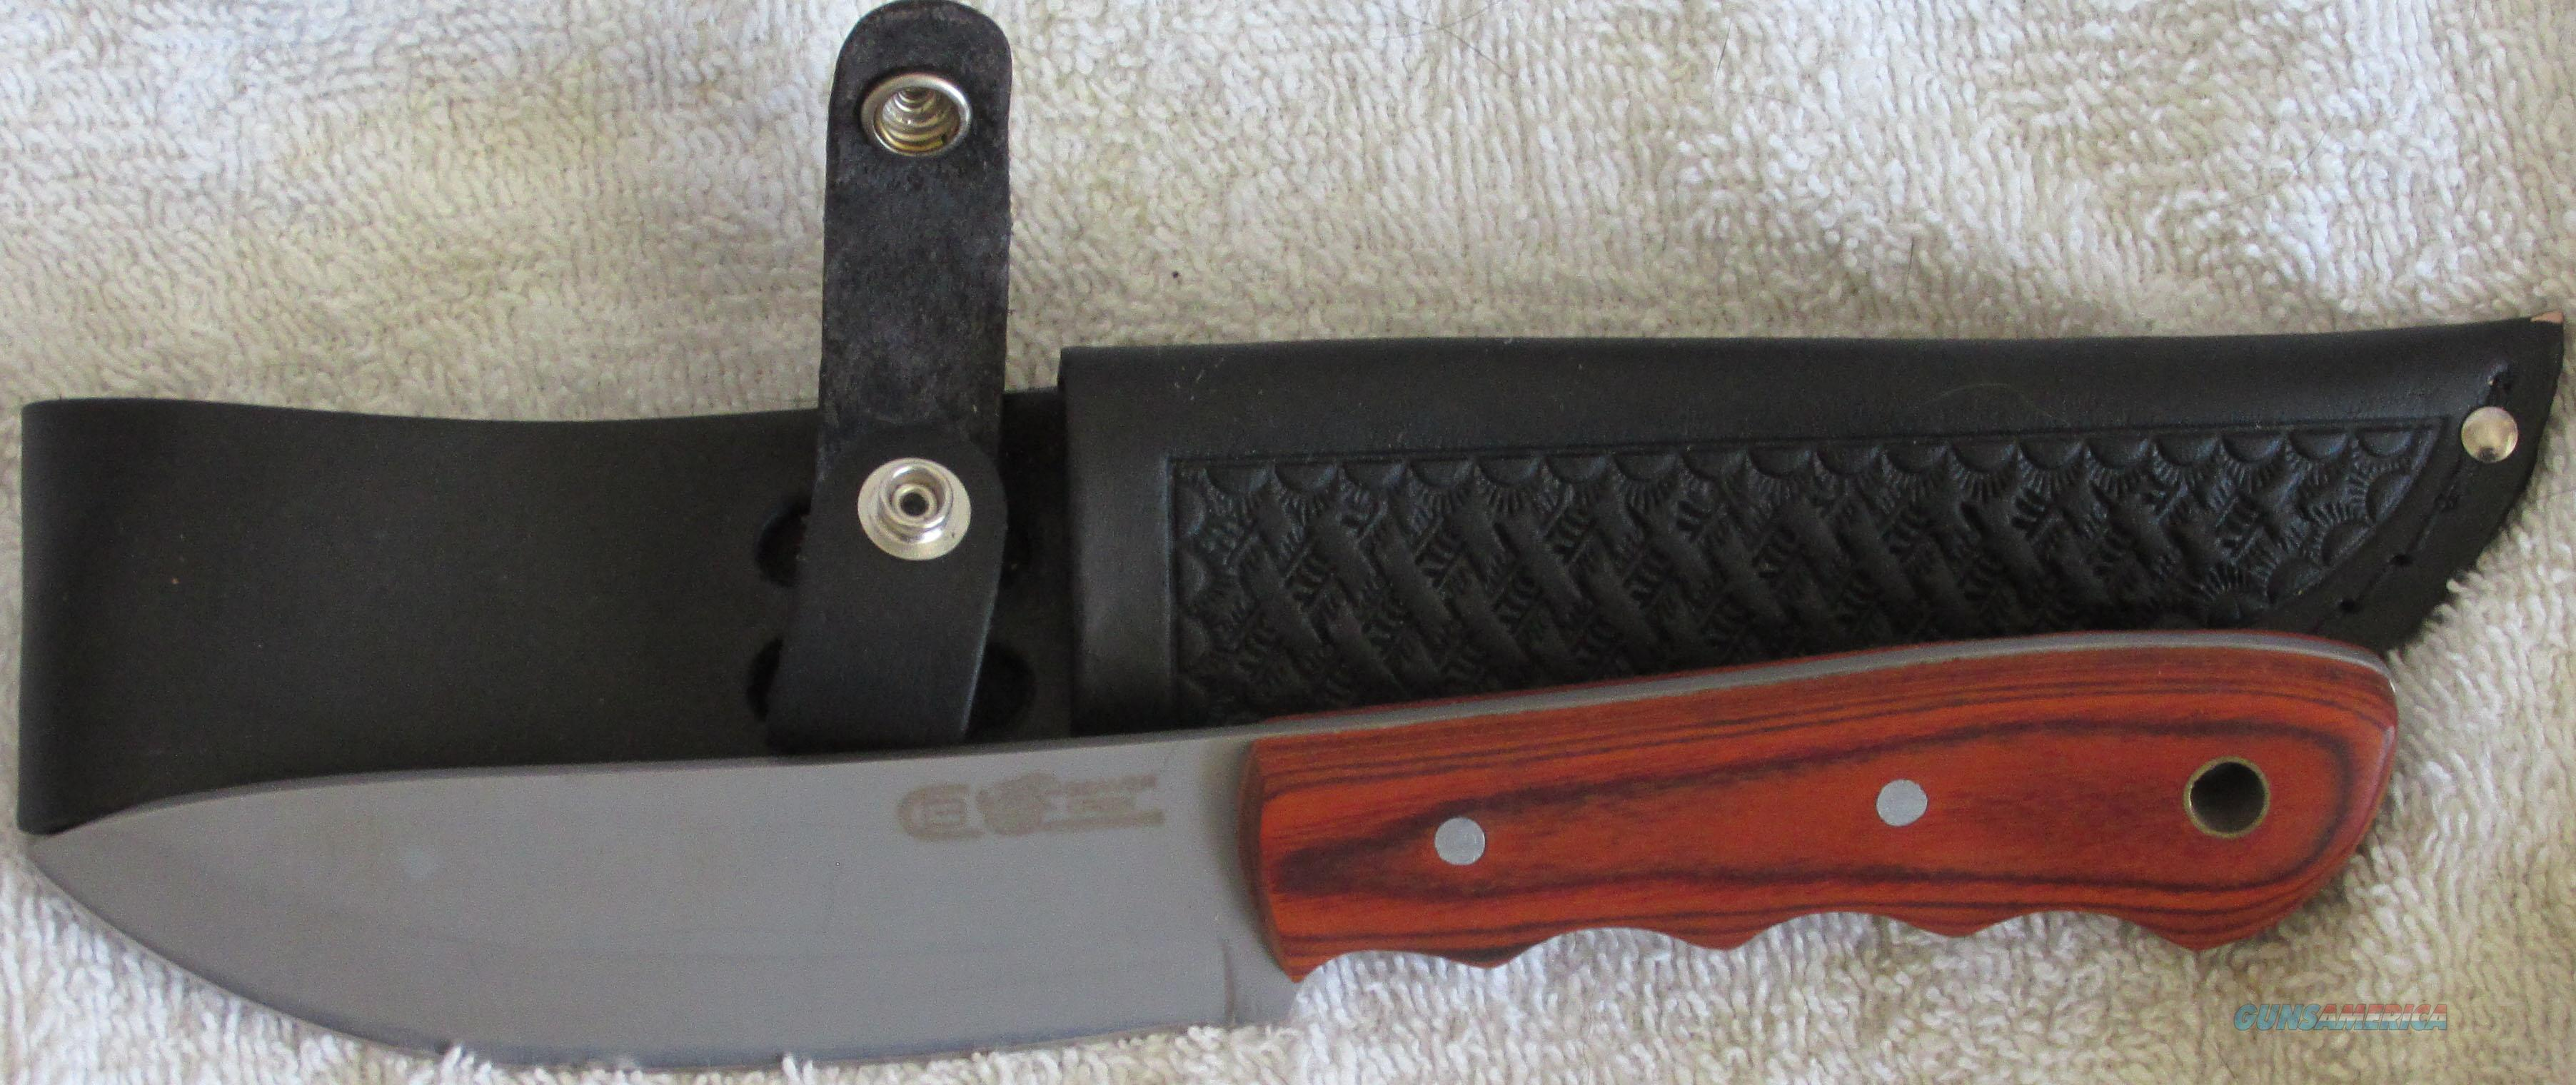 BEAVER CREEK KNIFE  Non-Guns > Knives/Swords > Knives > Fixed Blade > Imported